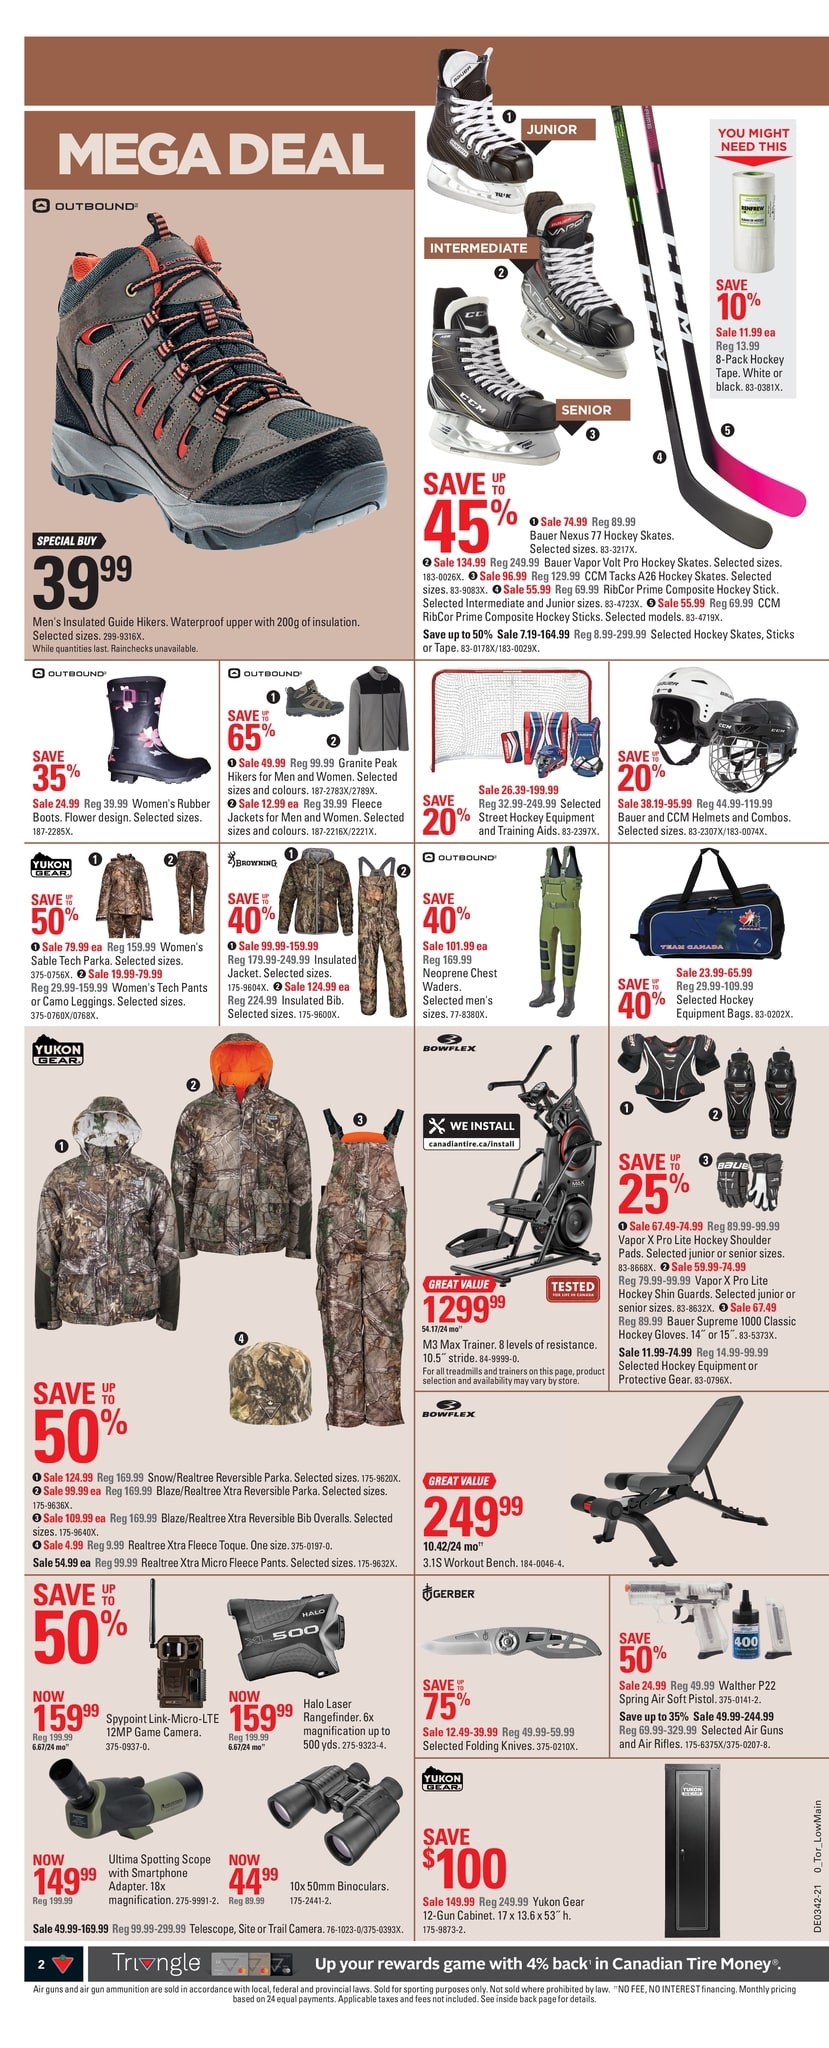 Canadian Tire - Weekly Flyer Specials - Page 3